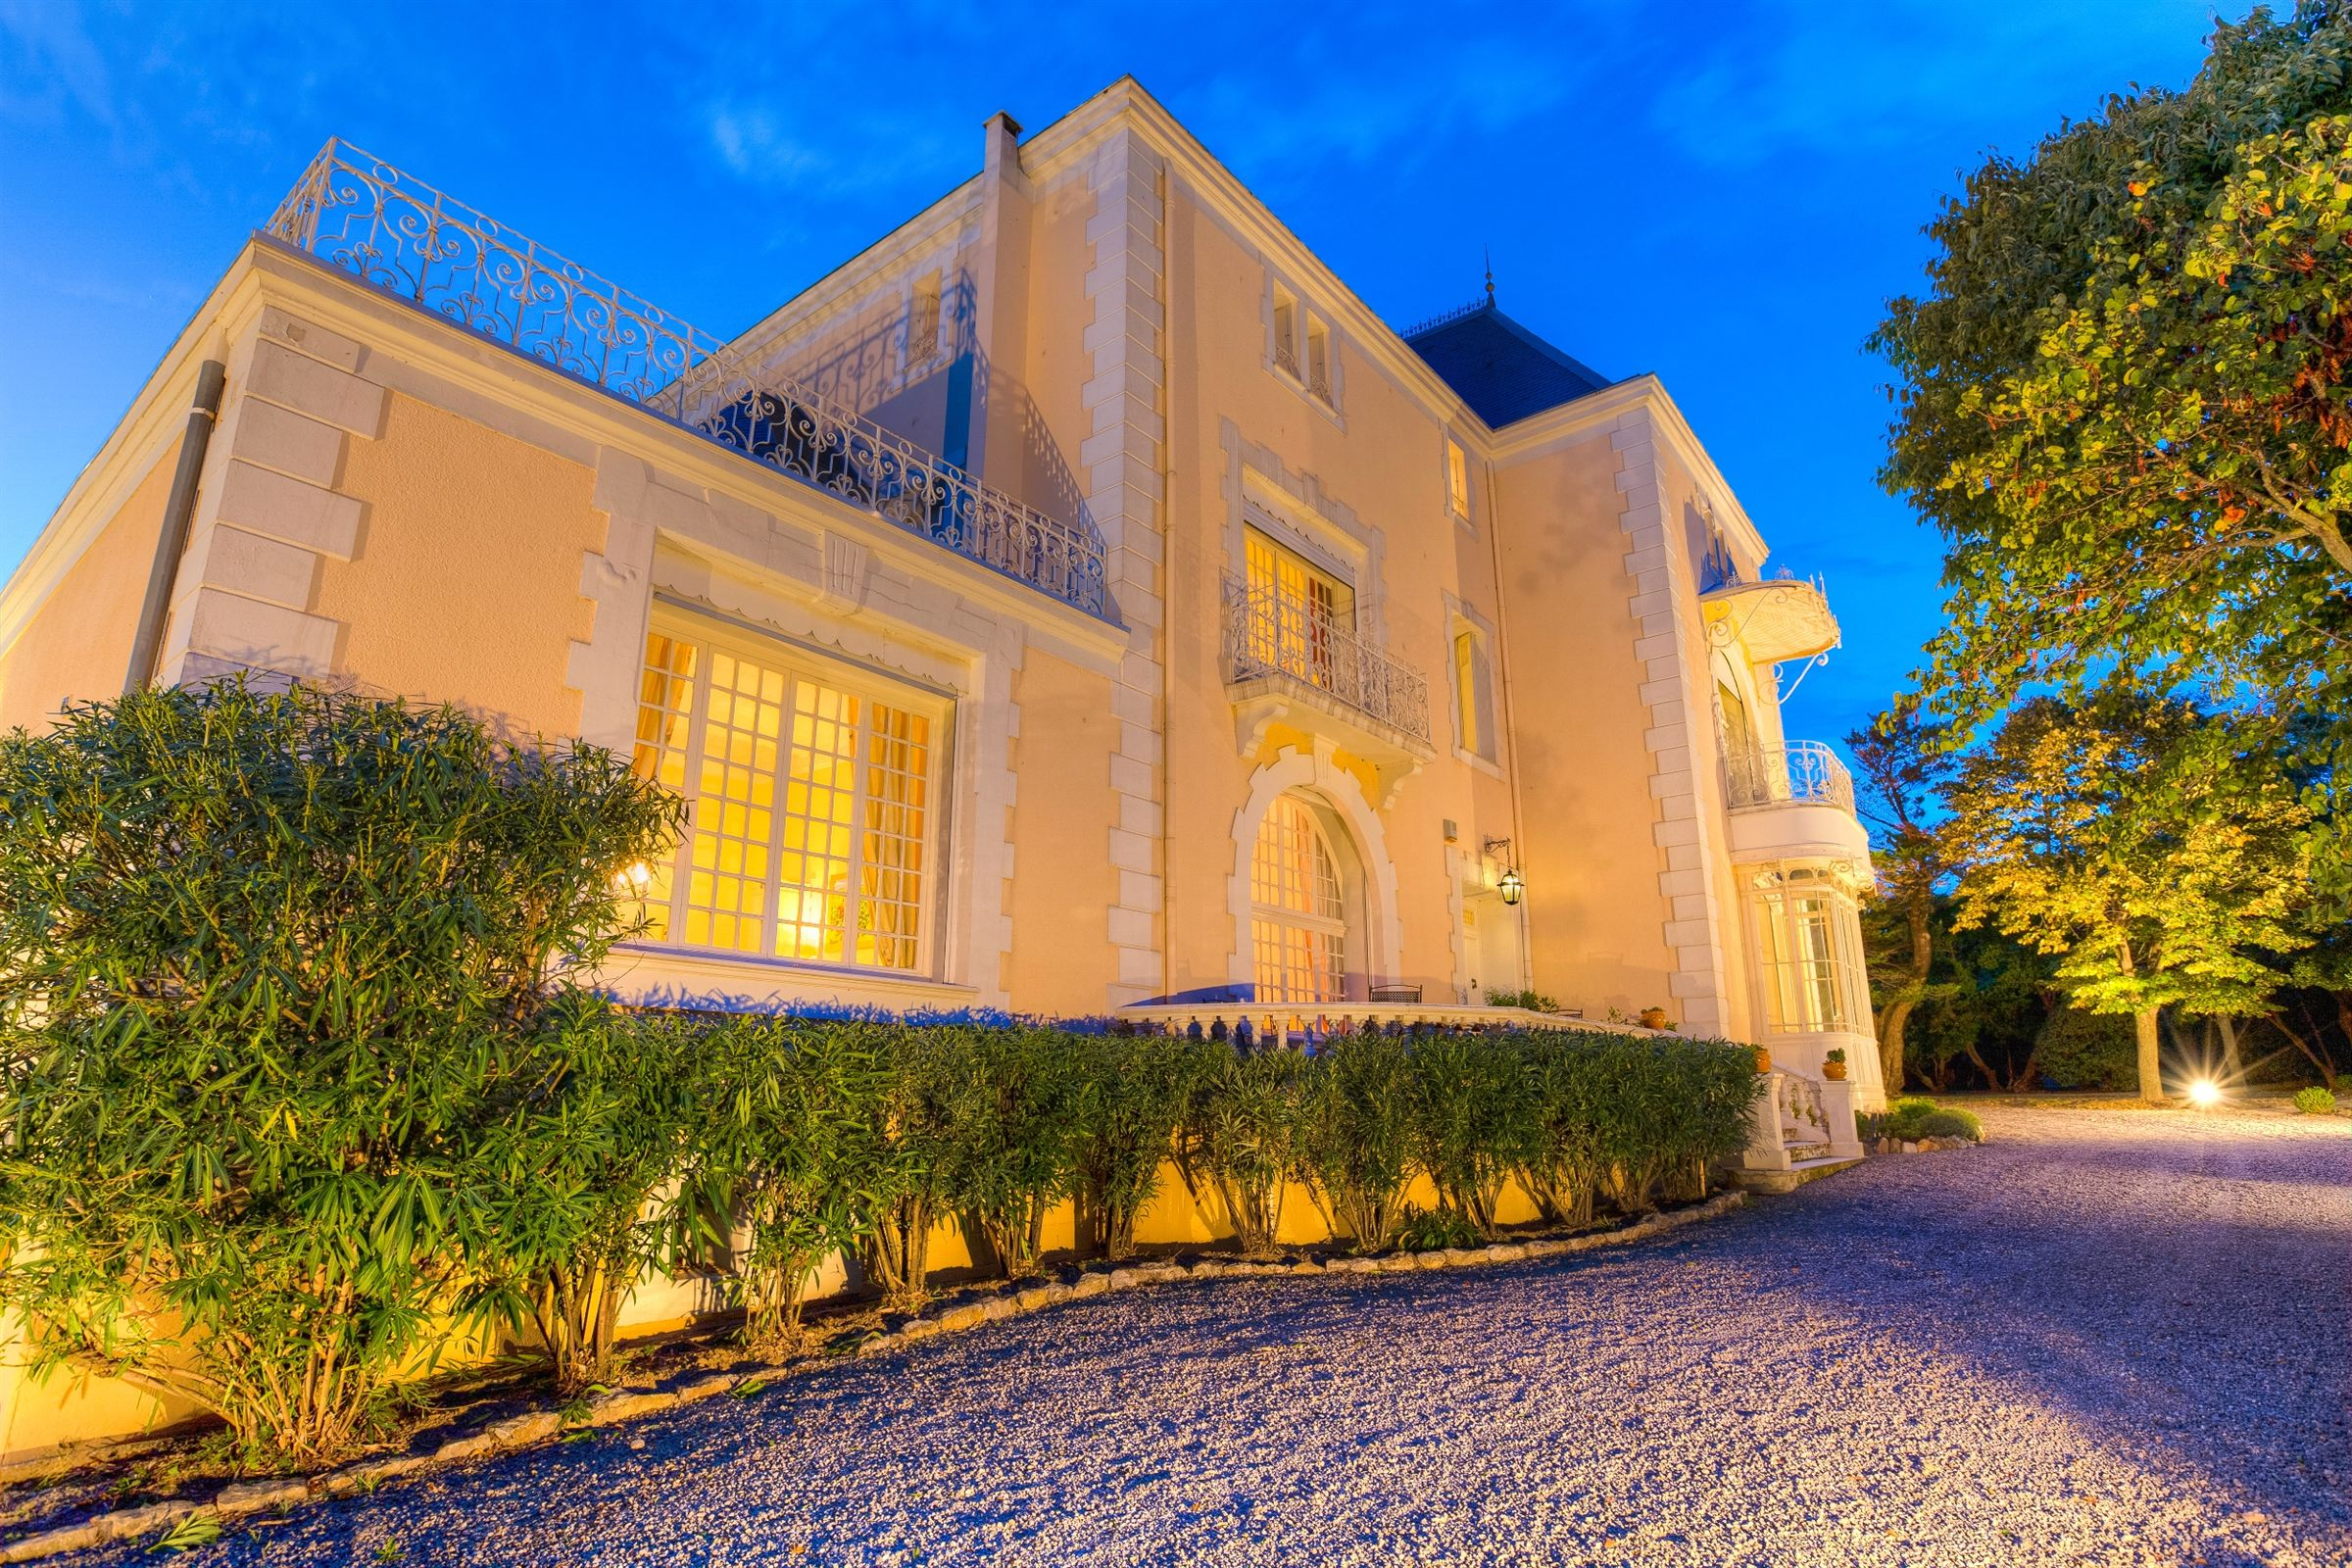 Single Family Home for Sale at NARBONNE, ELEGANT CHÂTEAU Narbonne, Languedoc-Roussillon, 11100 France